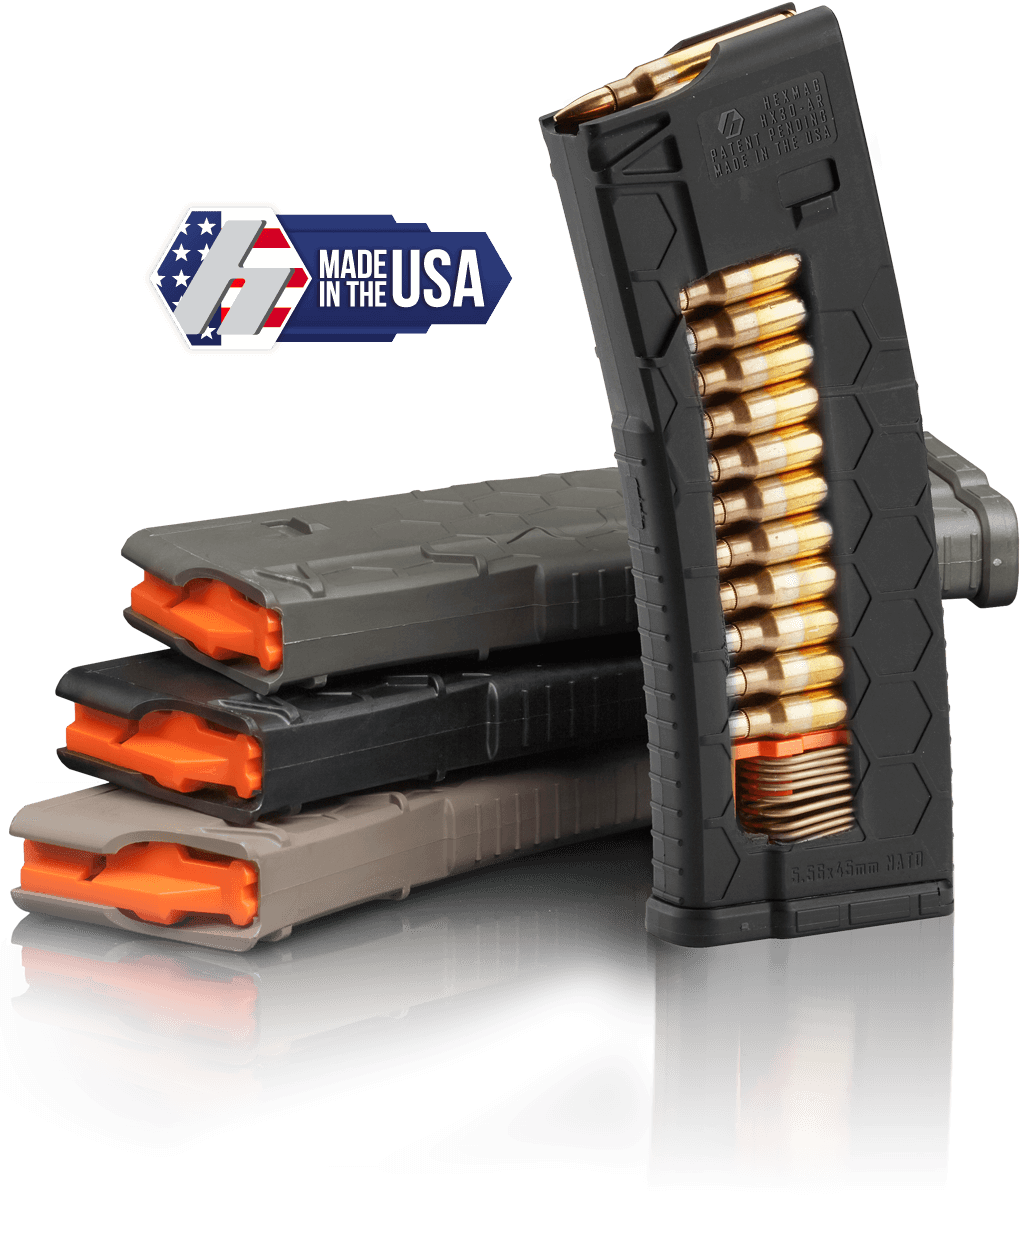 100 clip ar15. Best ar magazines for